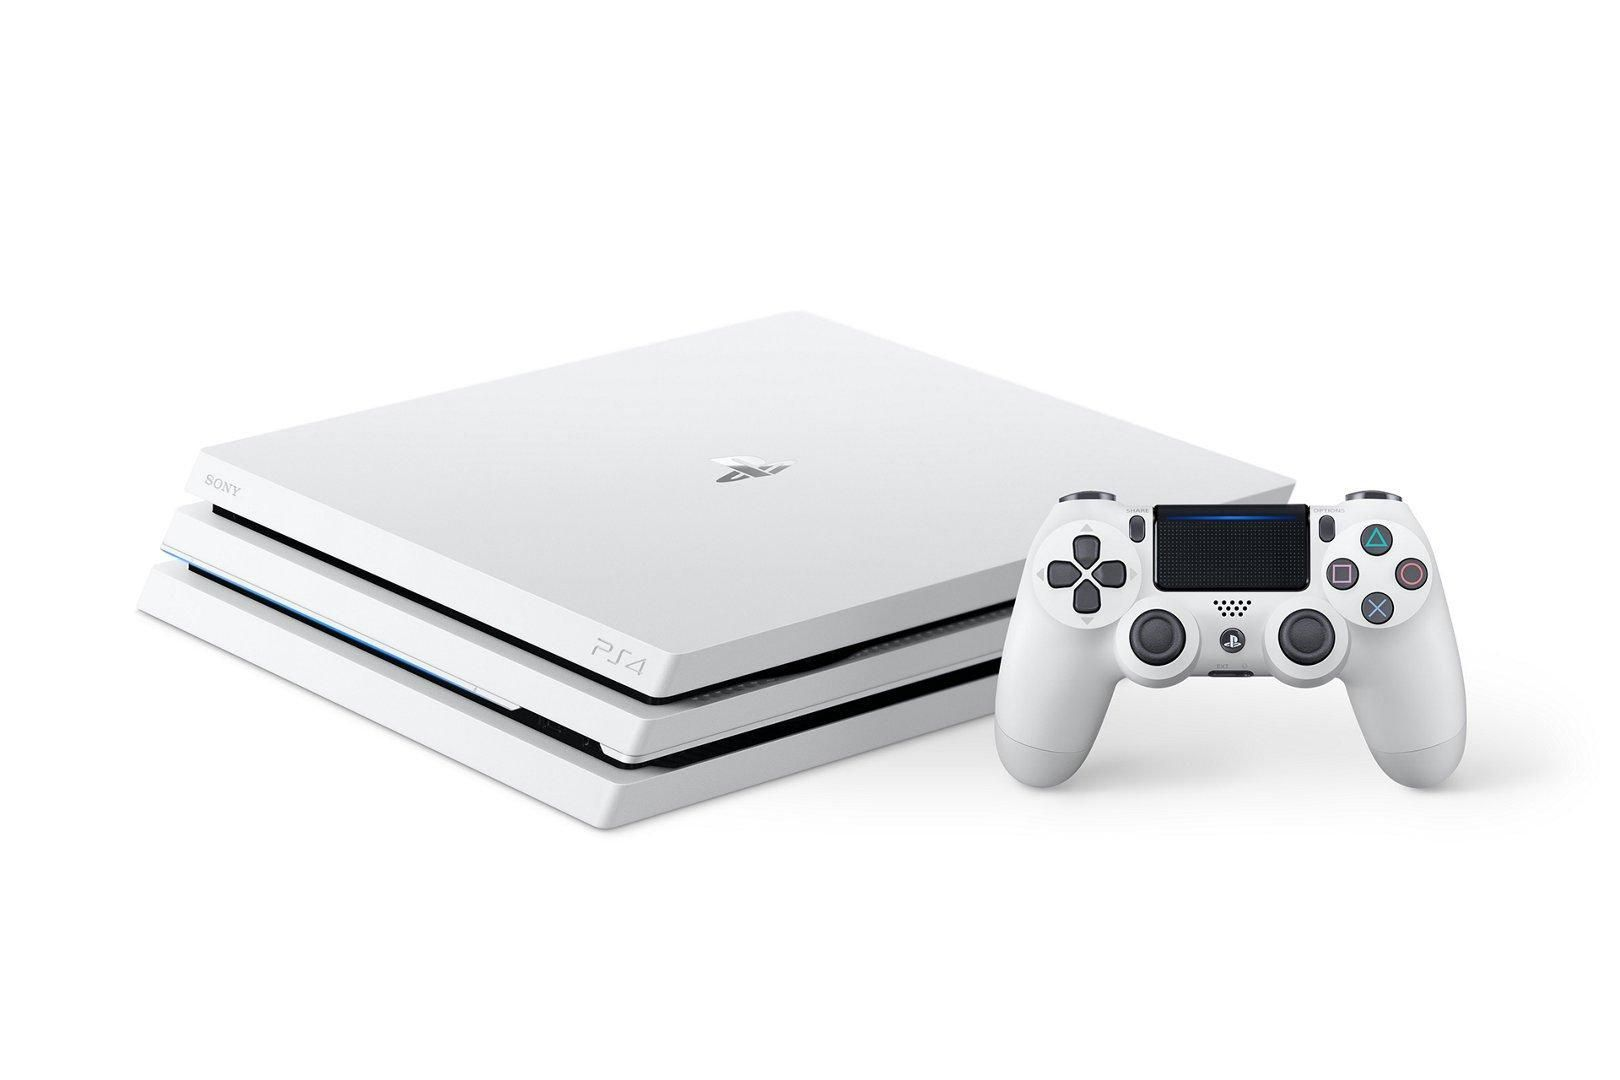 Playstation 4 Pro Glacier White 1tb Playstation 4 Gamestop In 2020 Ps4 Console Playstation Consoles Game Console